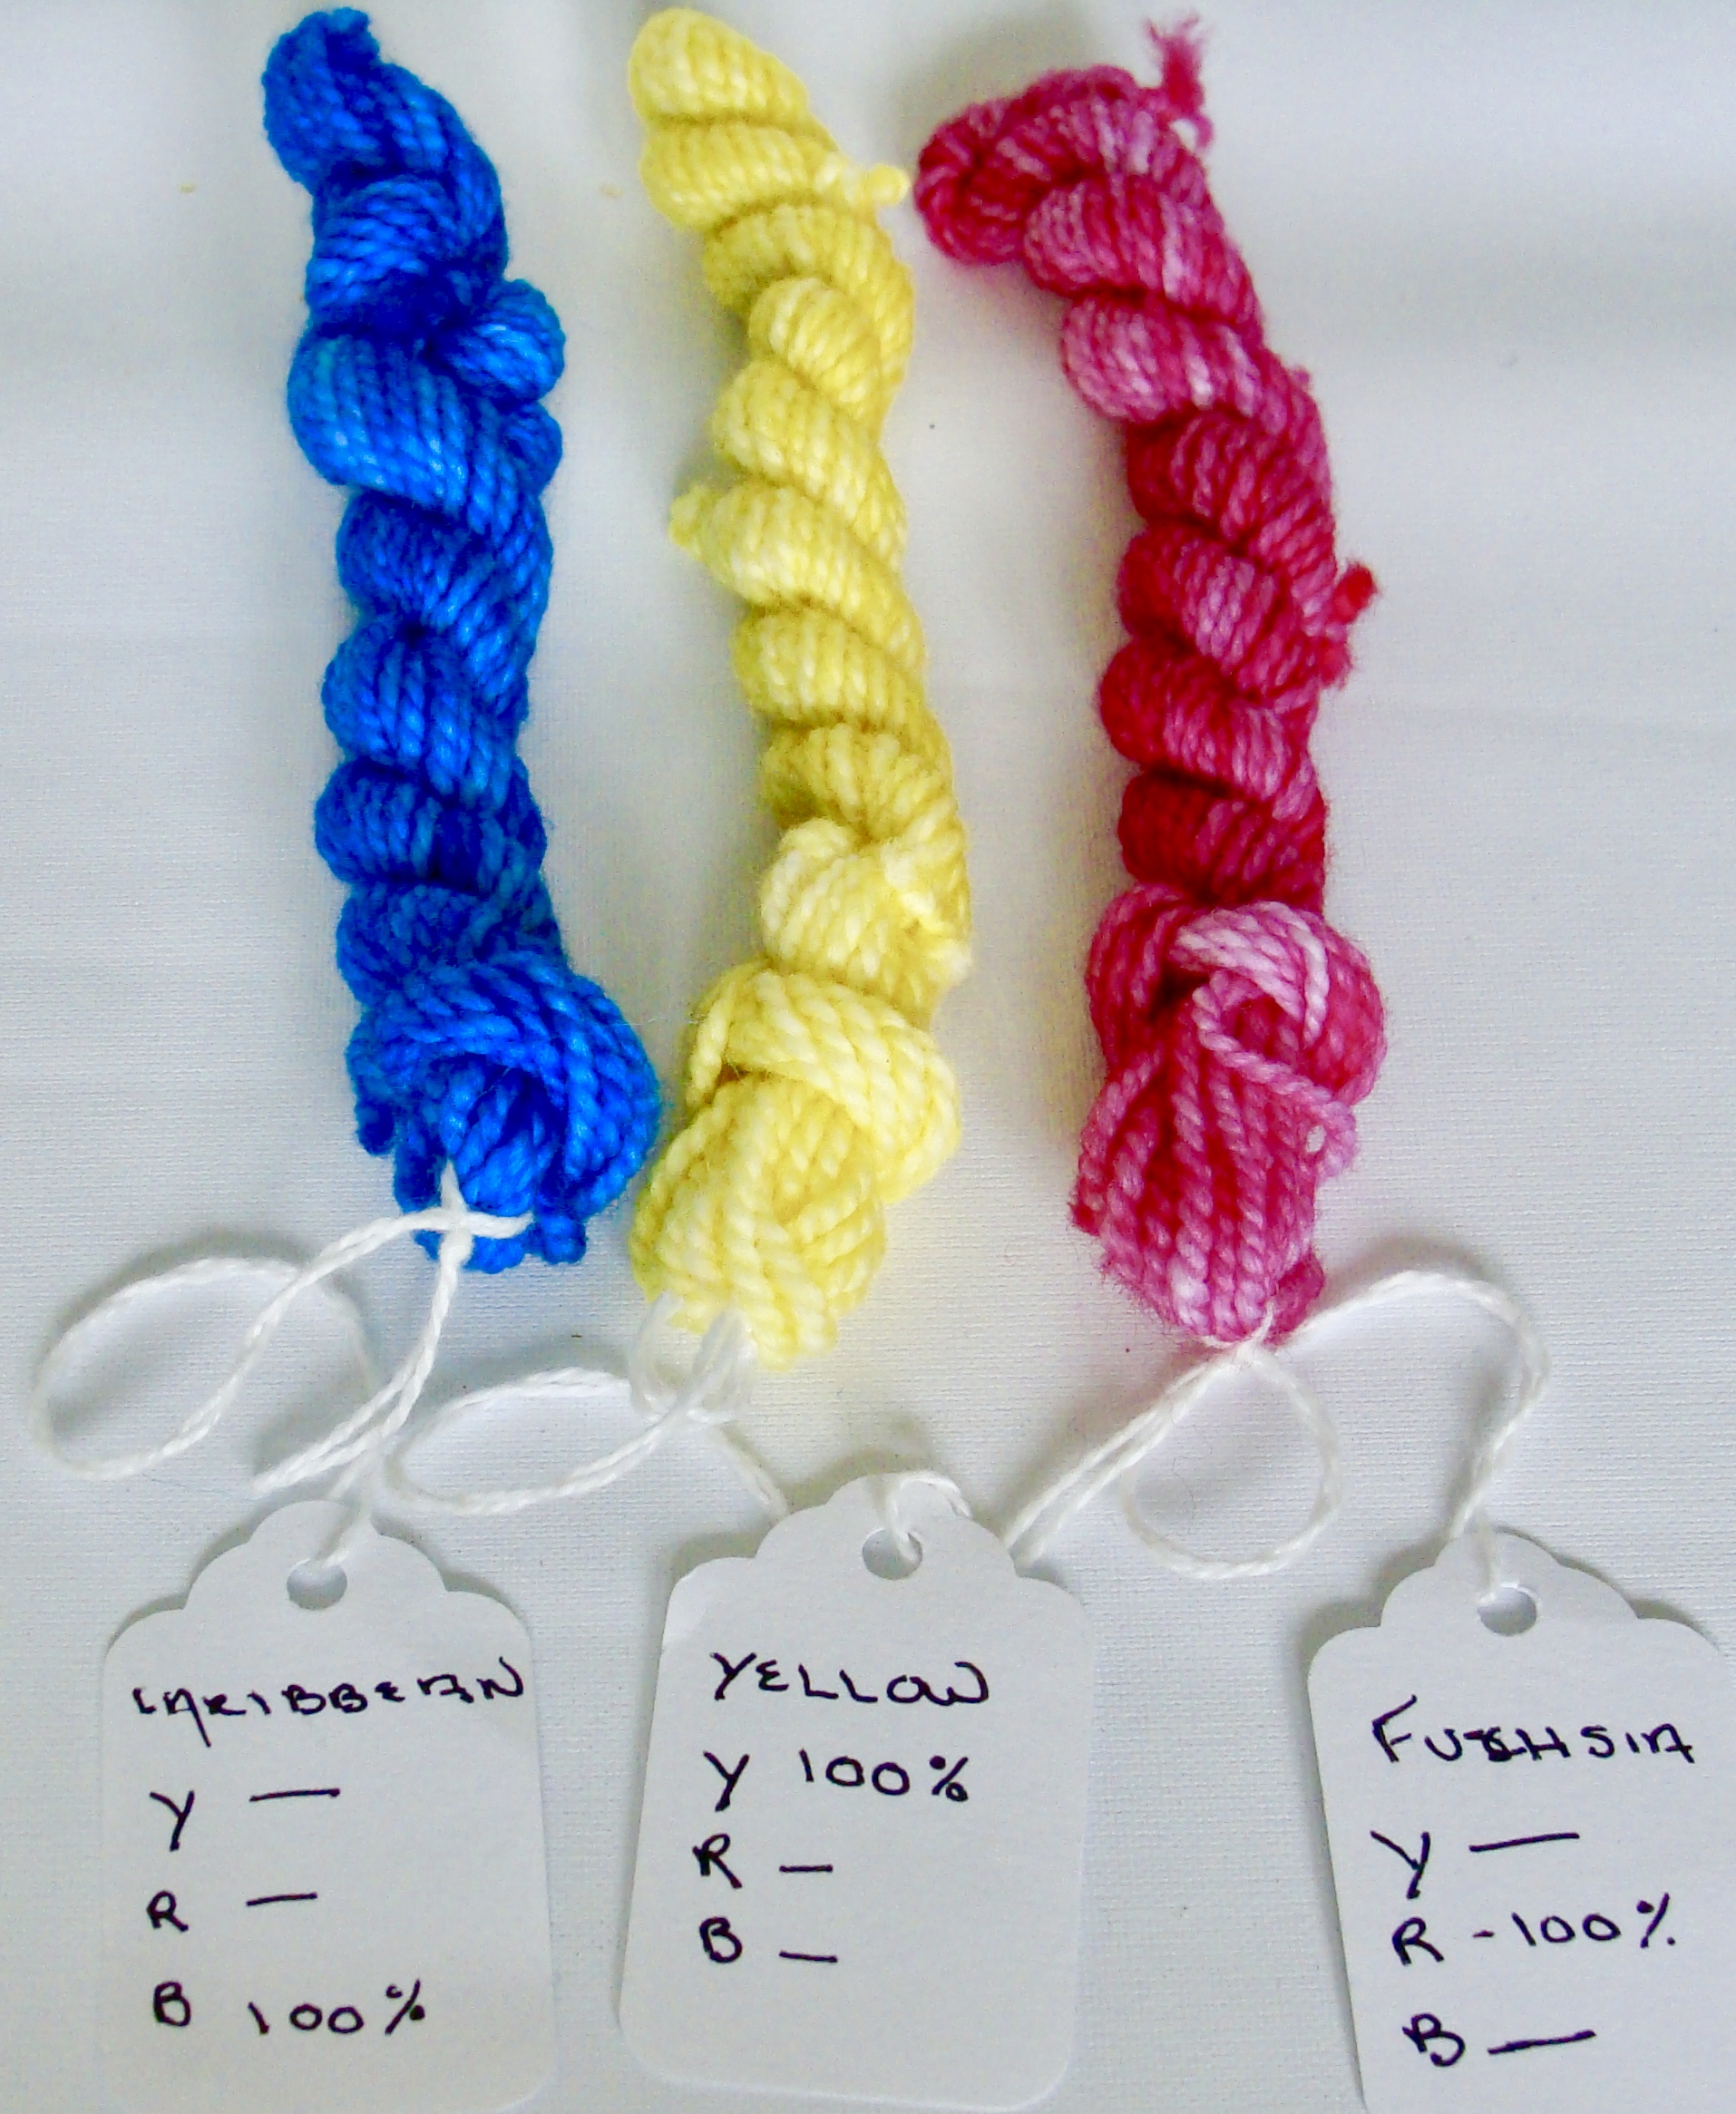 dyed wool in primary colors